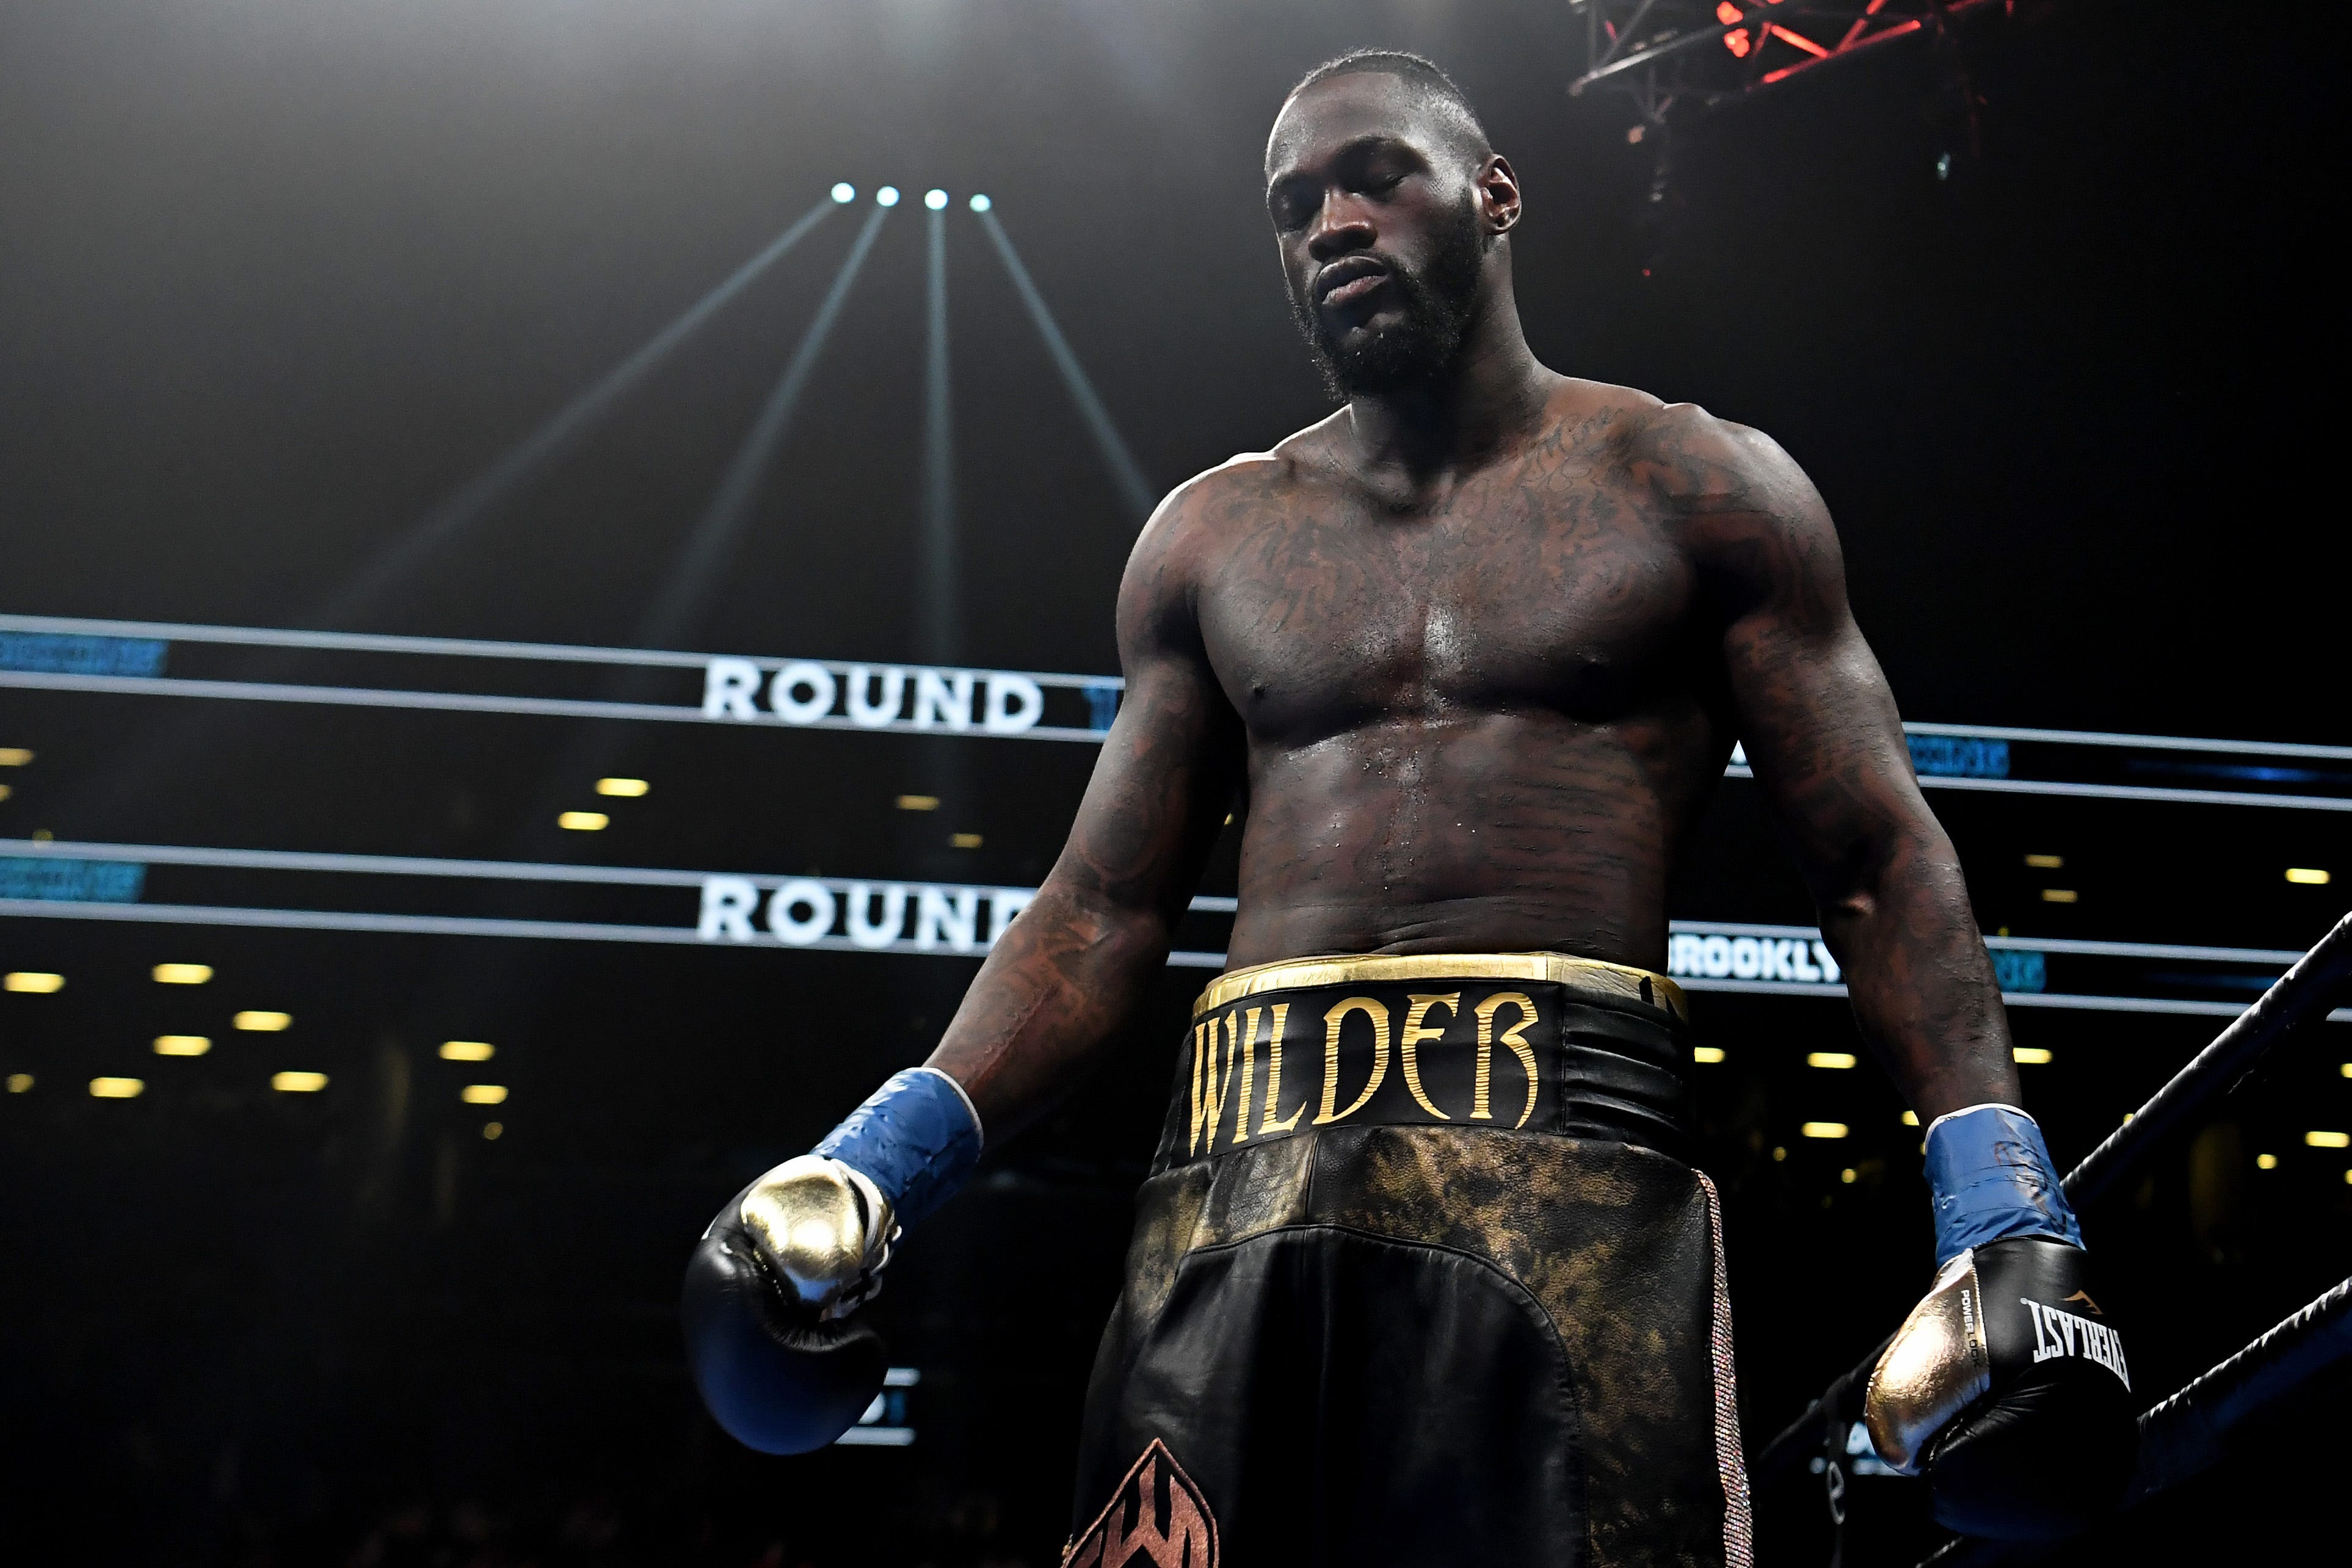 Deontay Wilder KOs Dominic Breazeale in first round to defend heavyweight belt